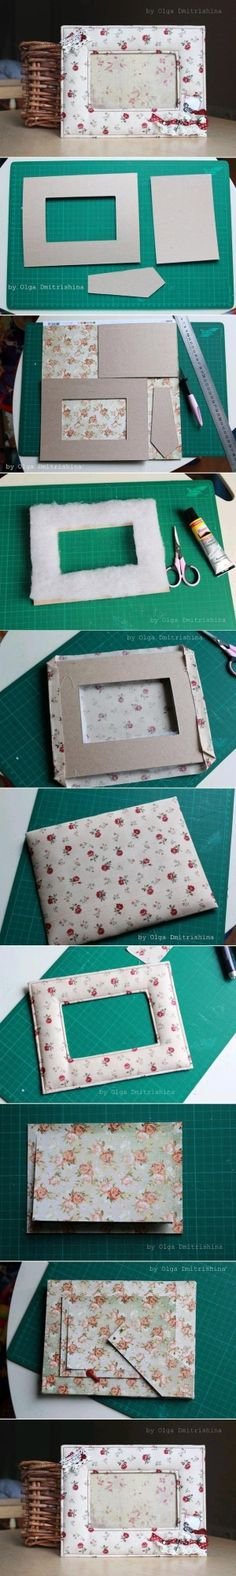 Picture frame from cardboard and fabric.